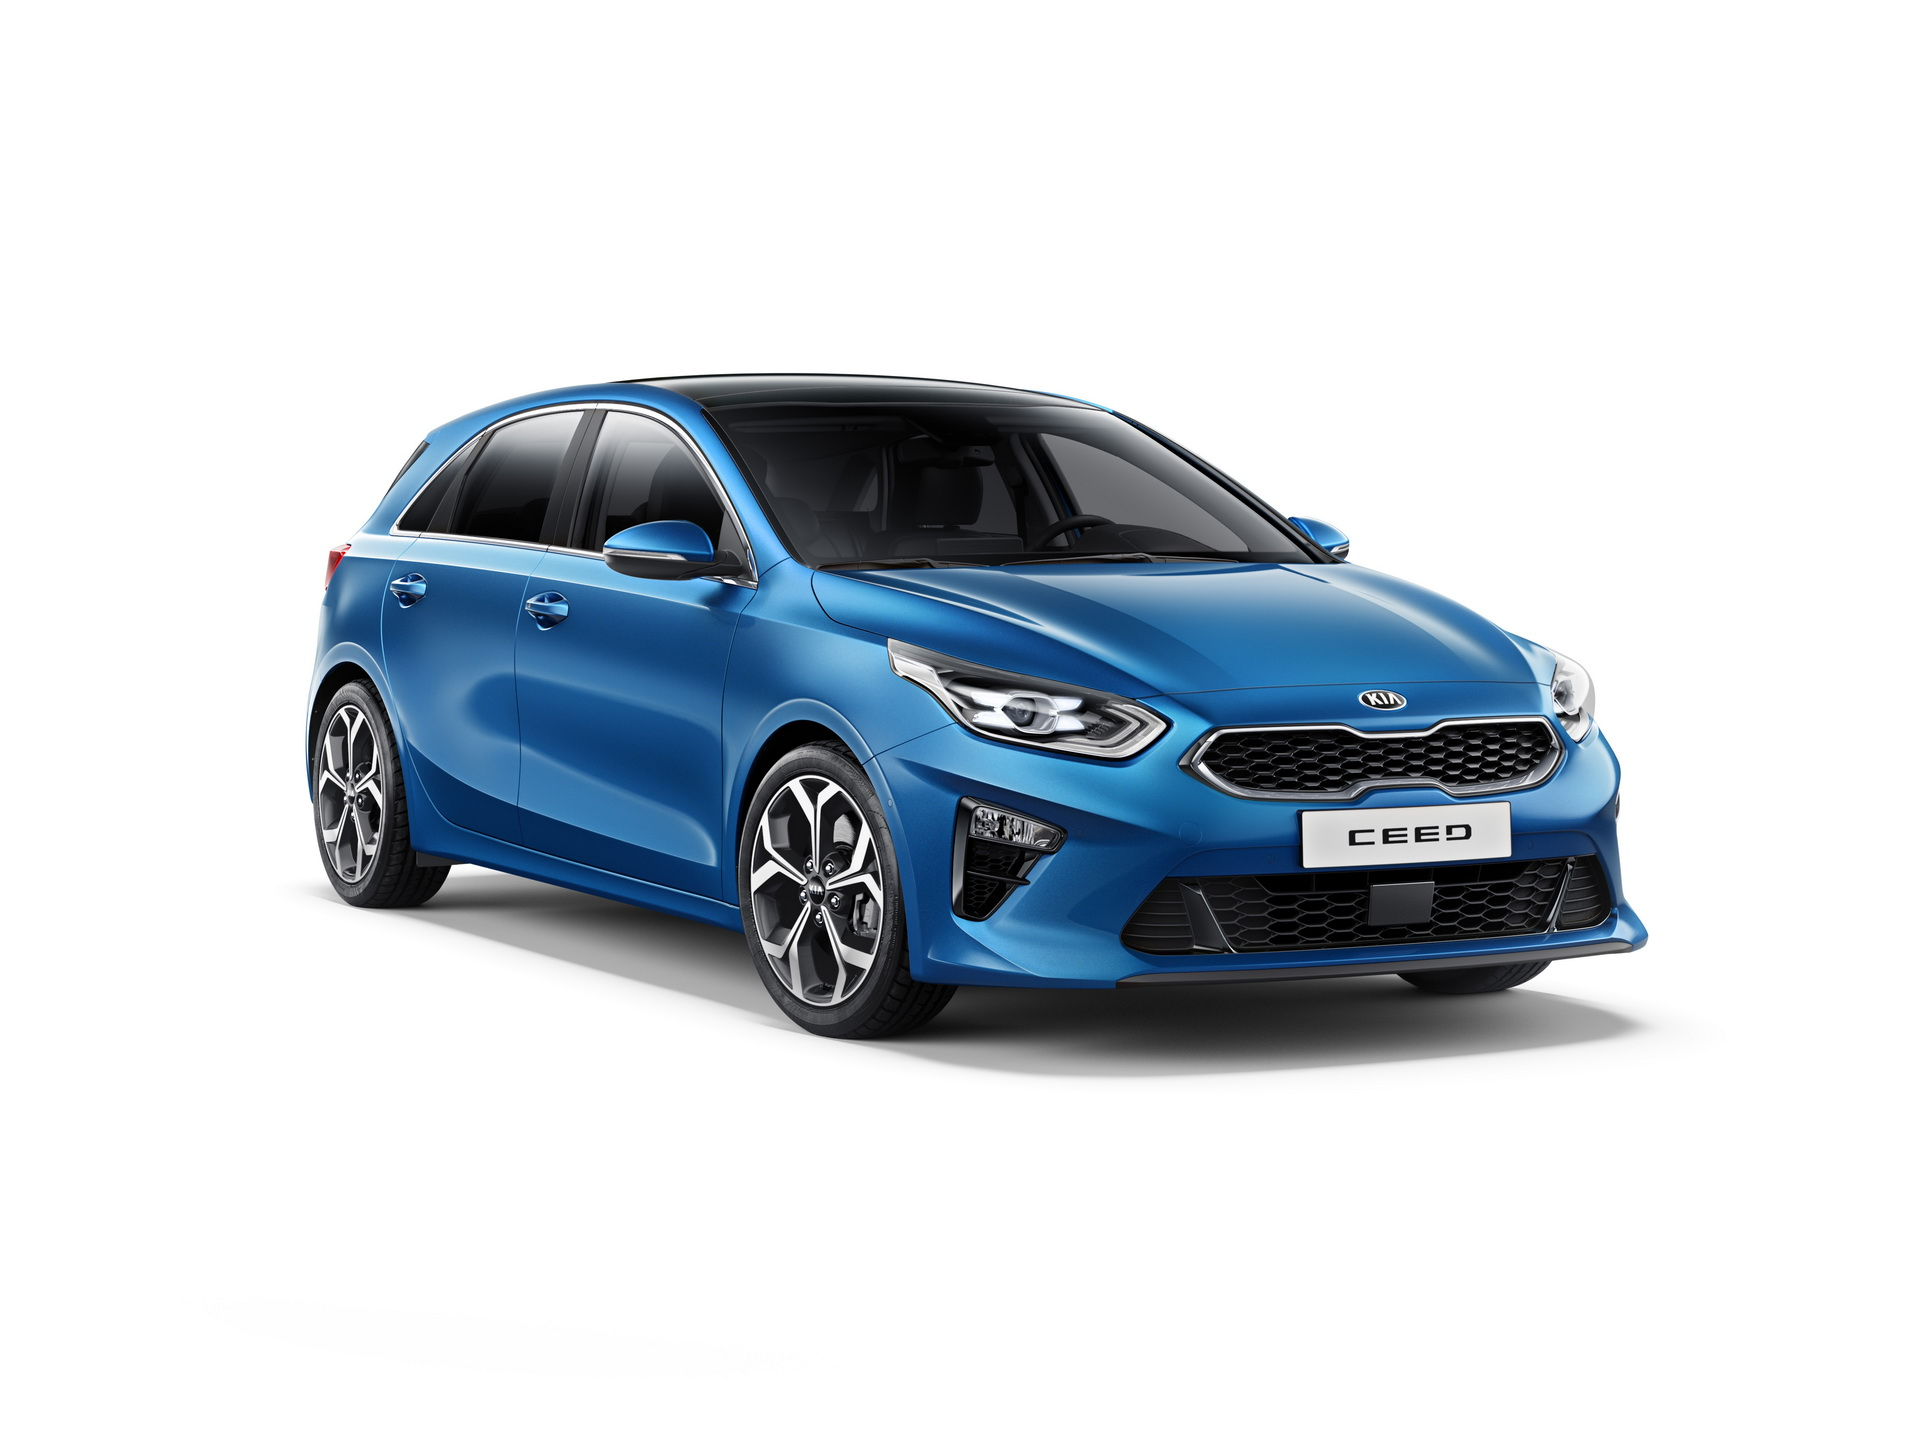 2018-kia-ceed-hatch-unveiled-108.jpg